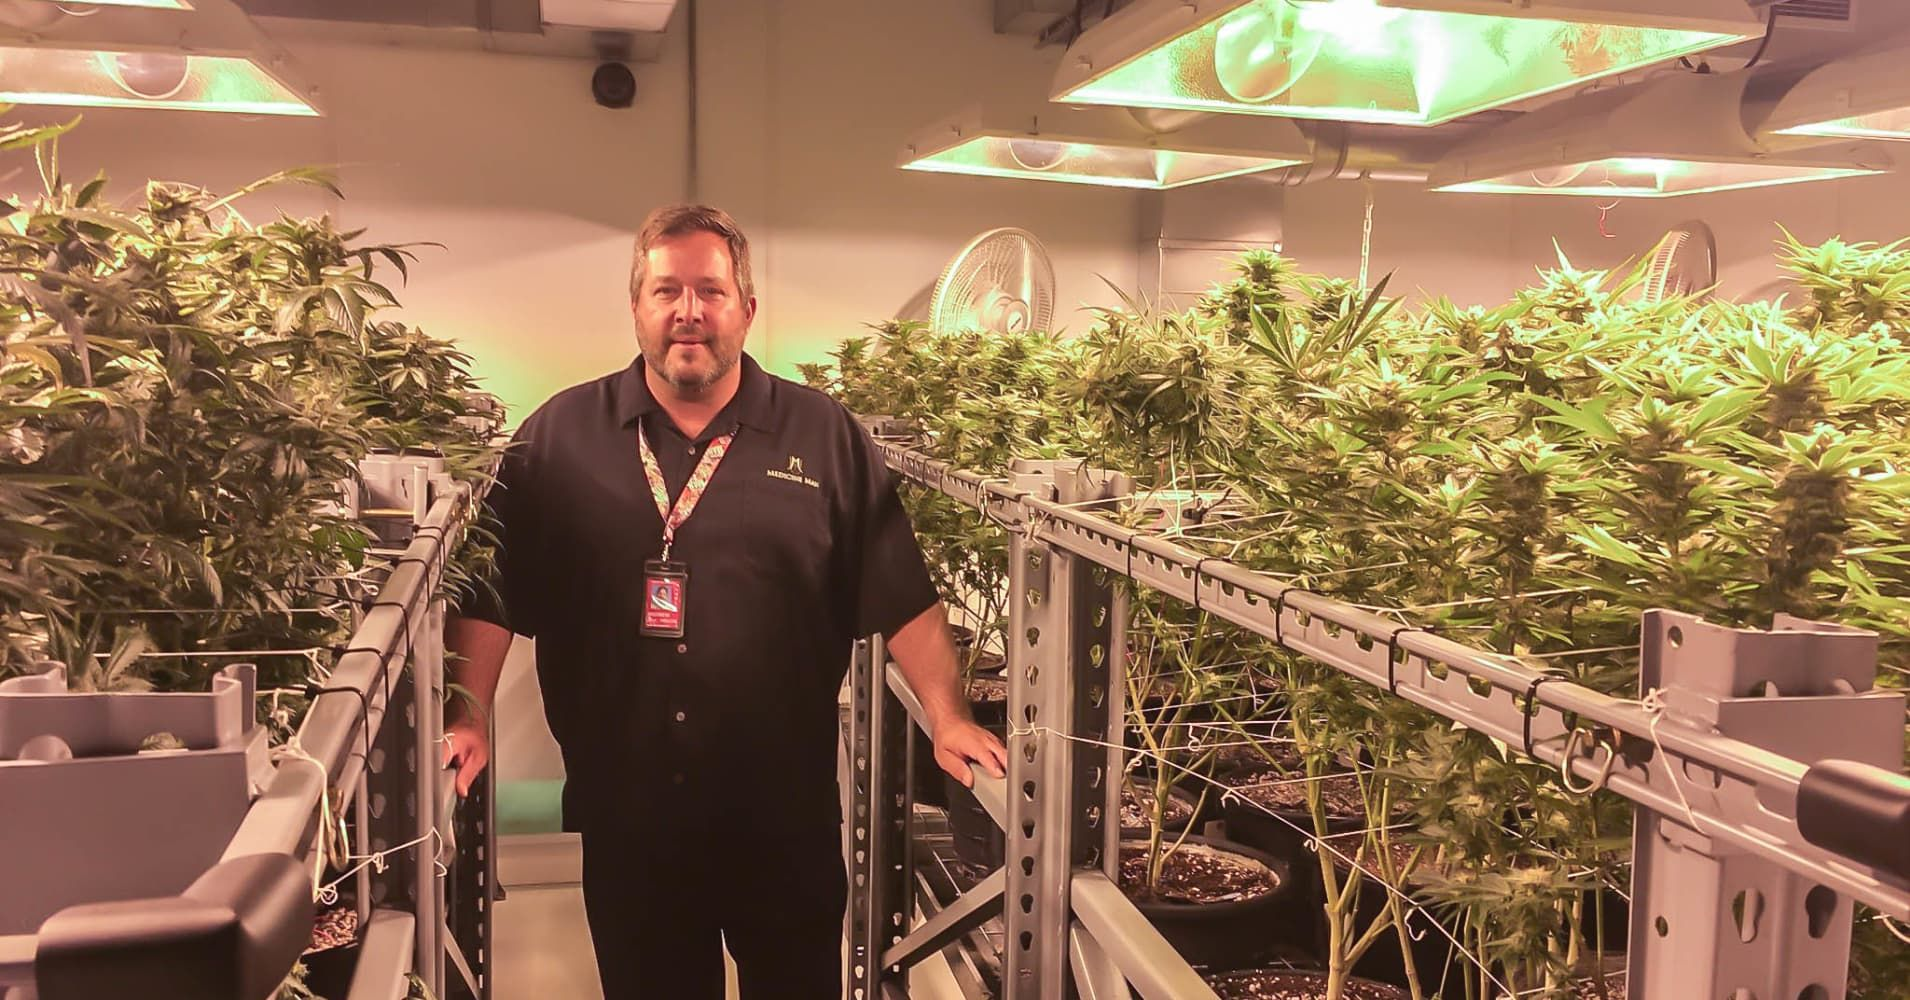 Weed business set to be one of fastest growing job generators in US